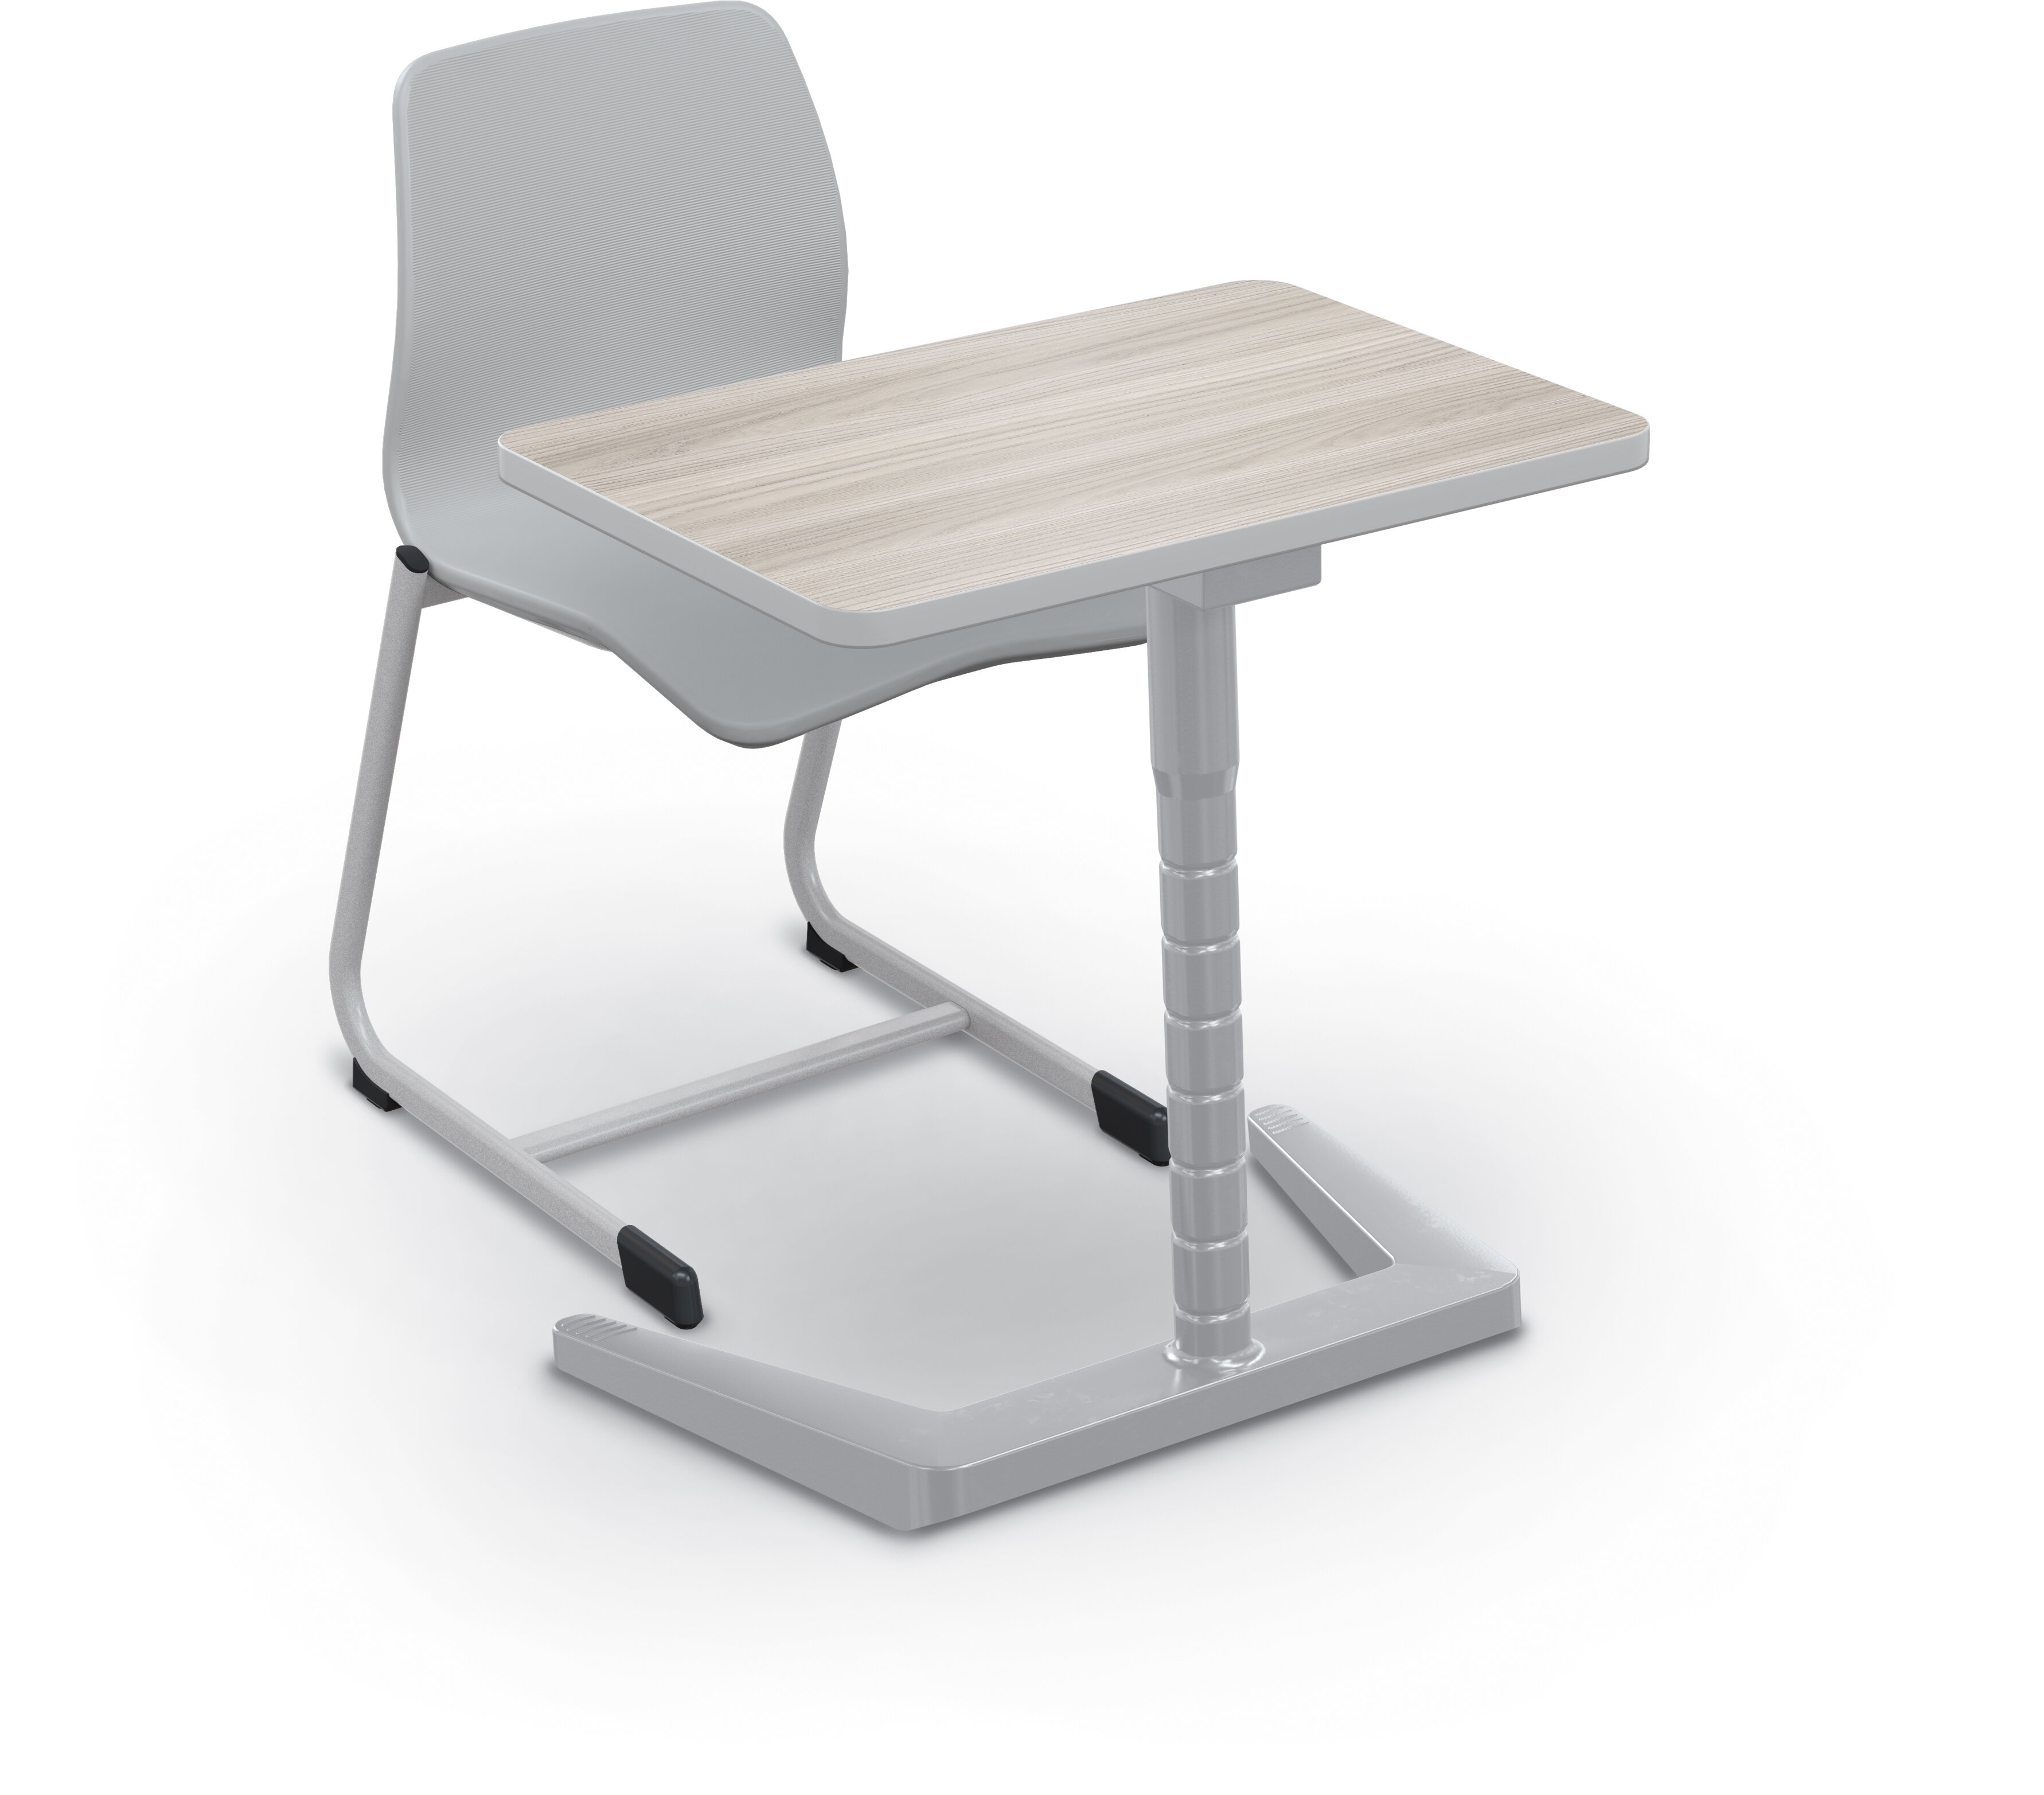 Classroom Set: Desk and Chair